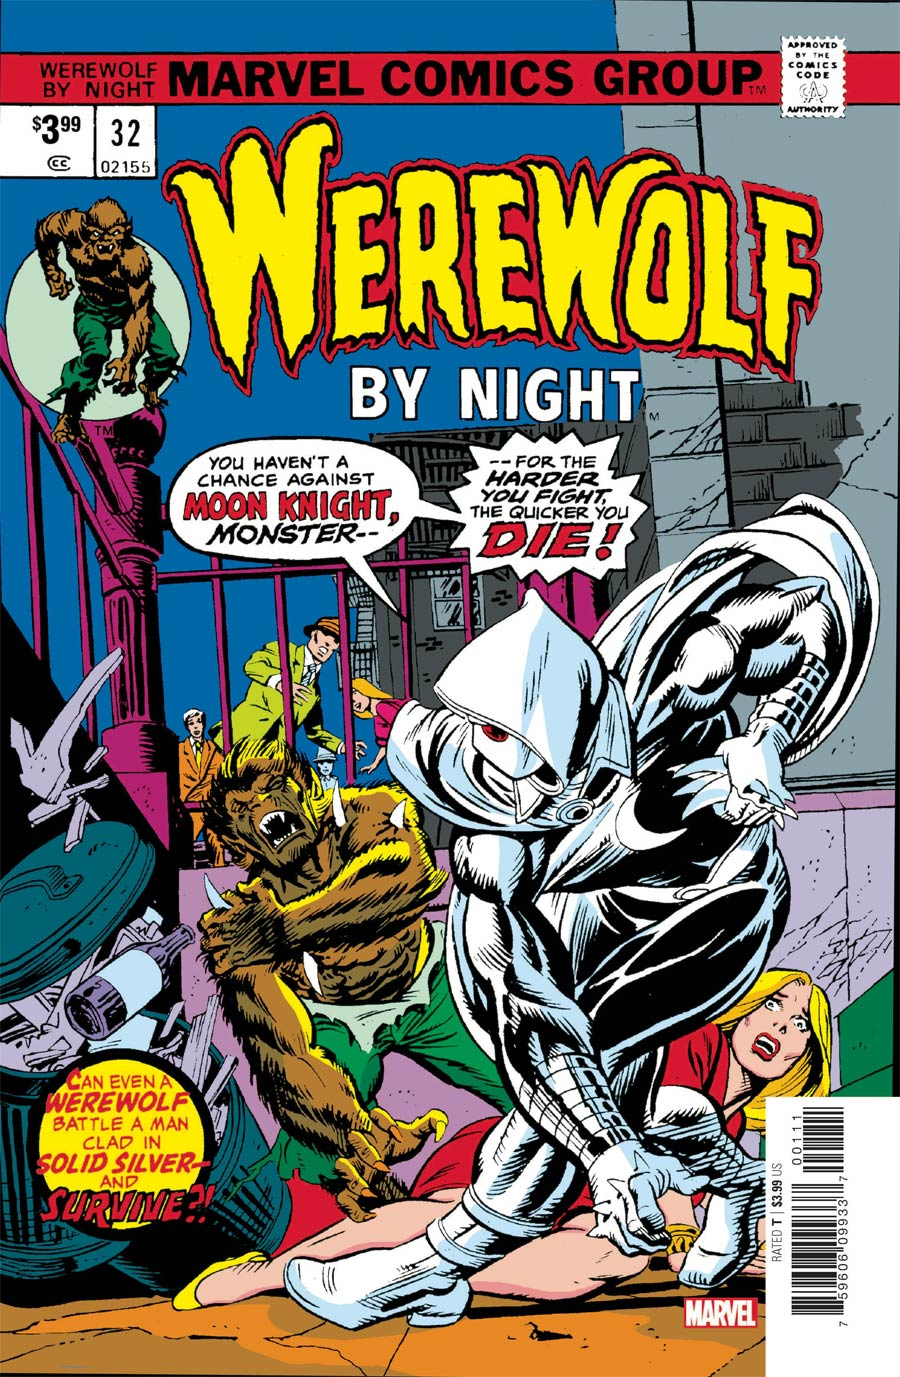 Werewolf By Night #32 Cover C Facsimile Edition (Limit 1 Per Customer)